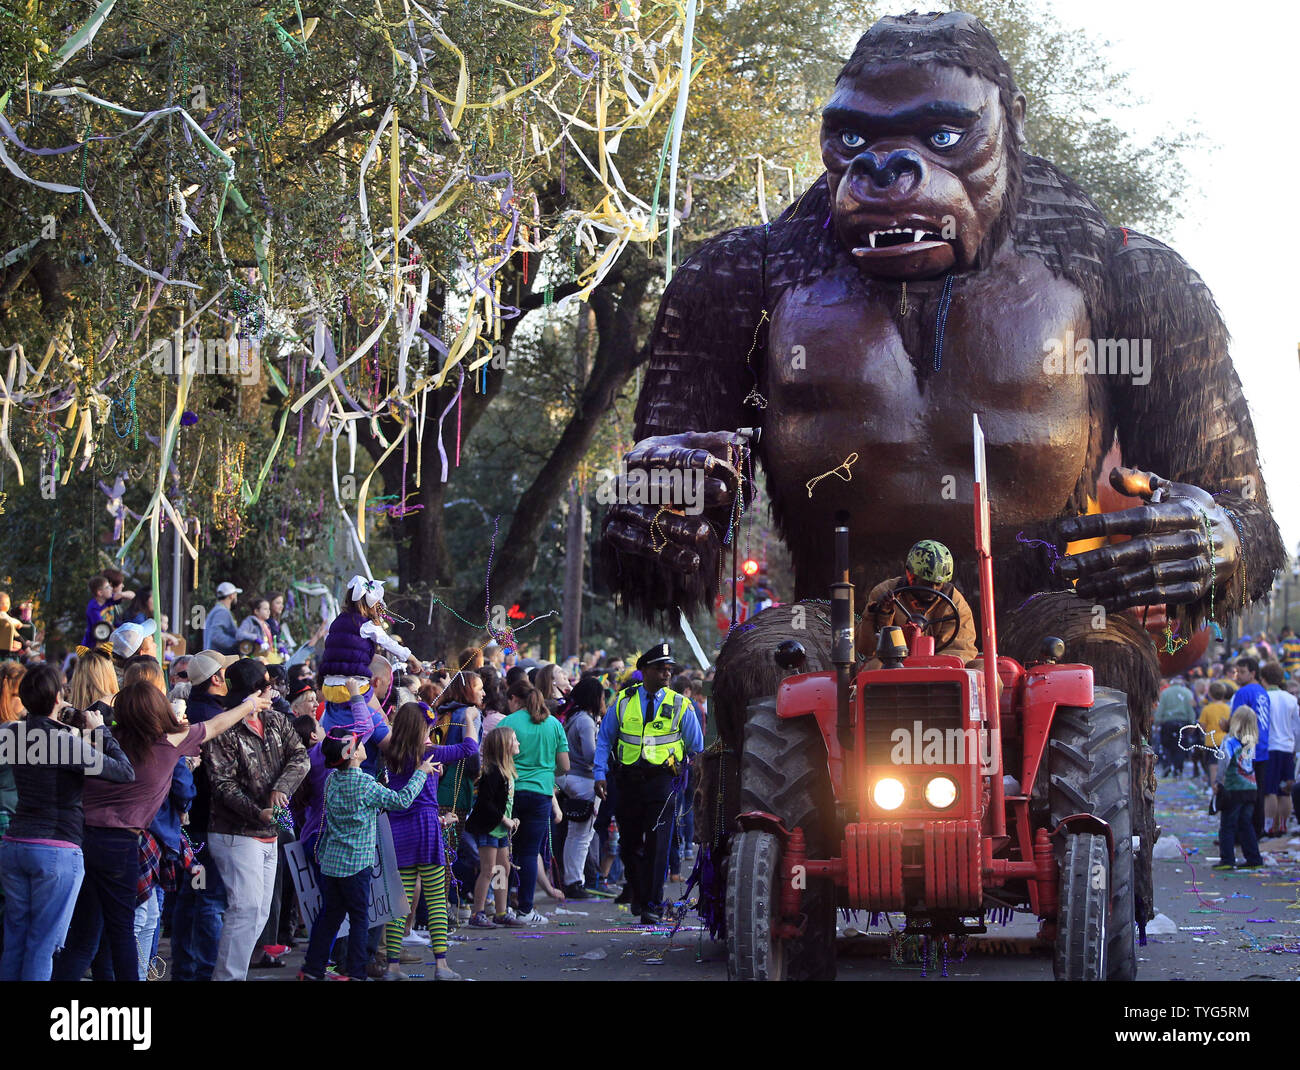 The Krewe of Bacchus Mardi Gras parade rolls down Napoleon Avenue in New Orleans Sunday February 26, 2017. The Krewe of Bacchus has been rolling on the traditional Uptown route since 1969.  Photo by AJ Sisco/UPI Stock Photo